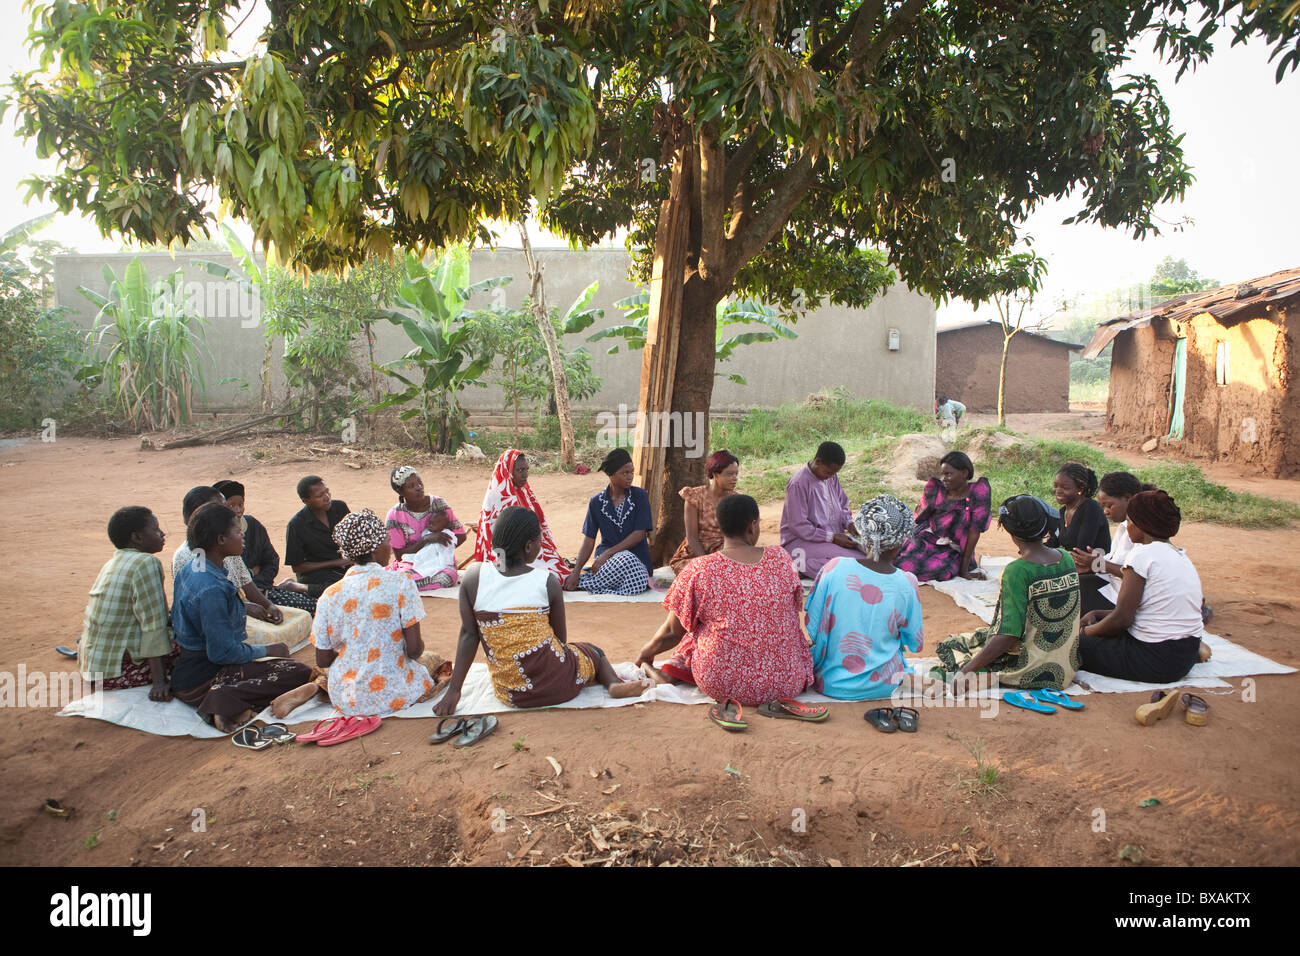 Women attend a community meeting in Nkono Village, a village outside Iganga town, Eastern Uganda, East Africa. Stock Photo